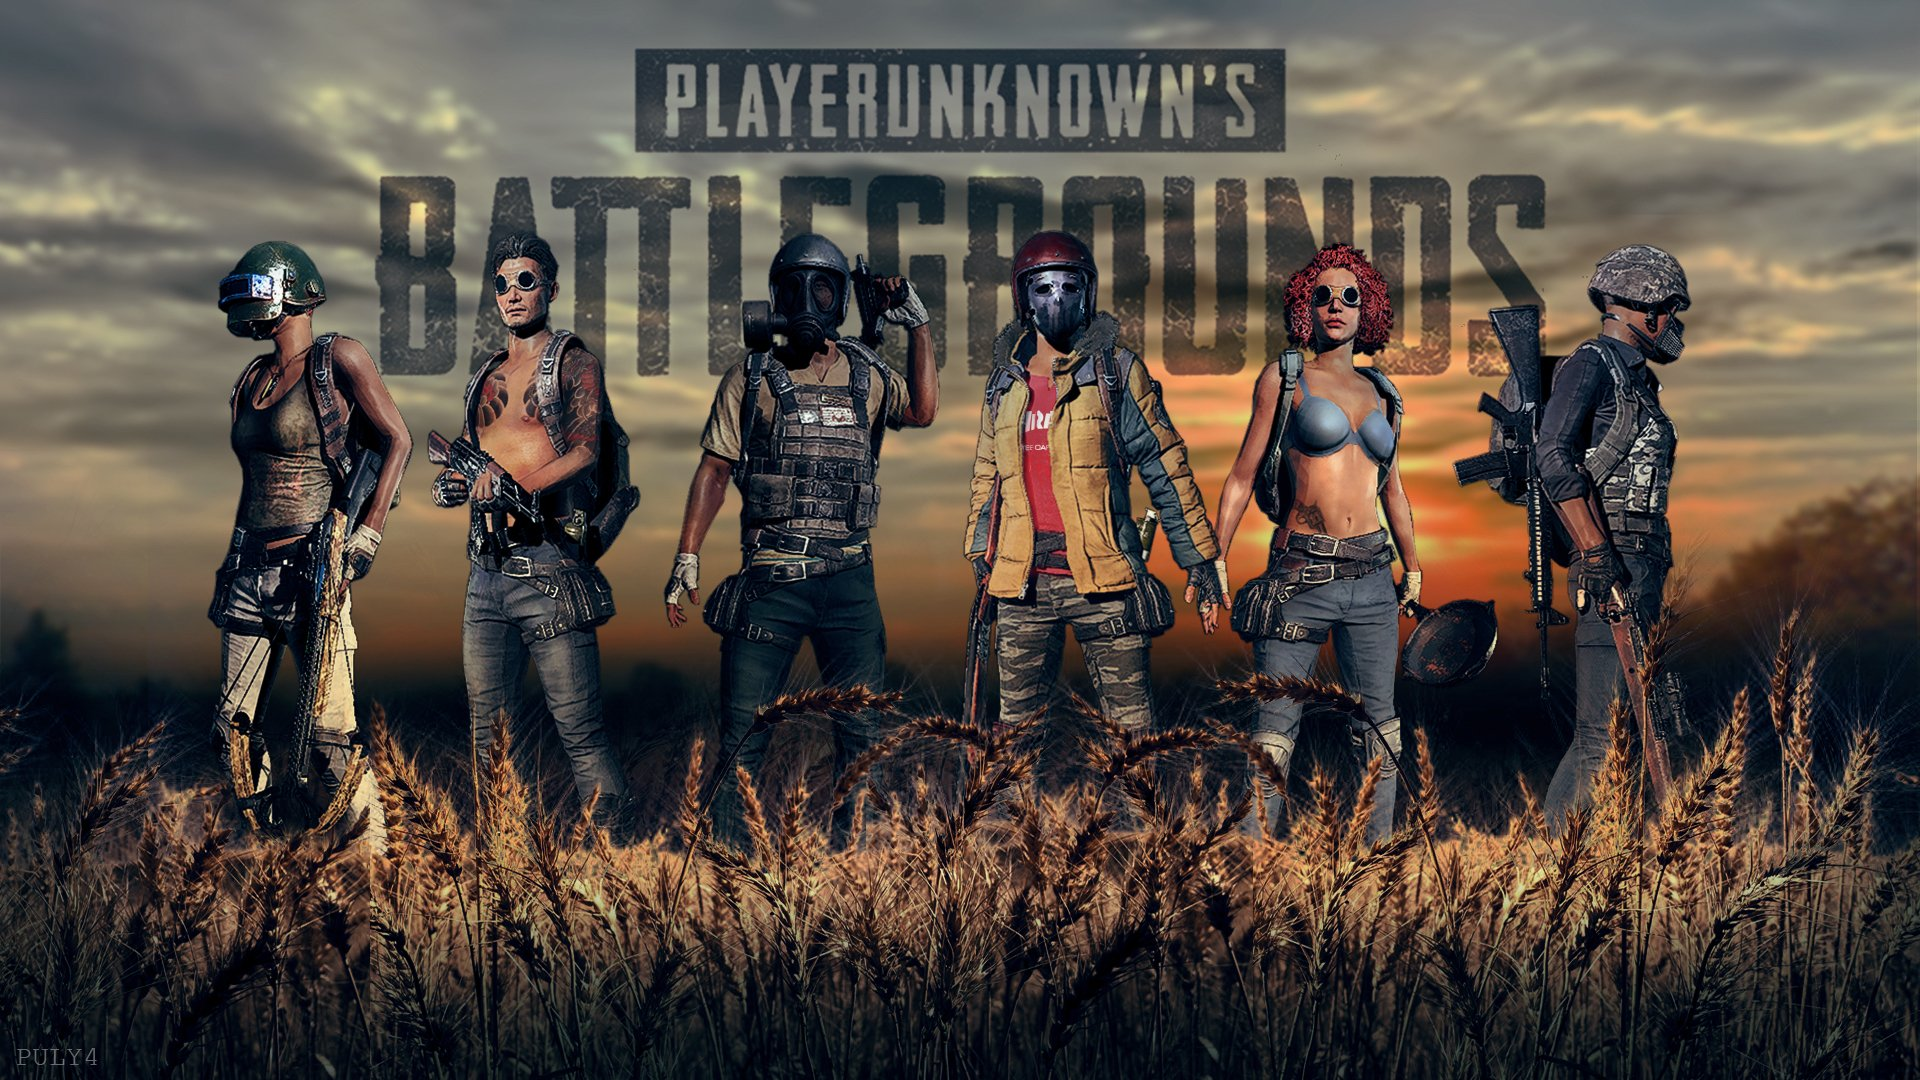 Video Game - PlayerUnknown's Battlegrounds  Wallpaper